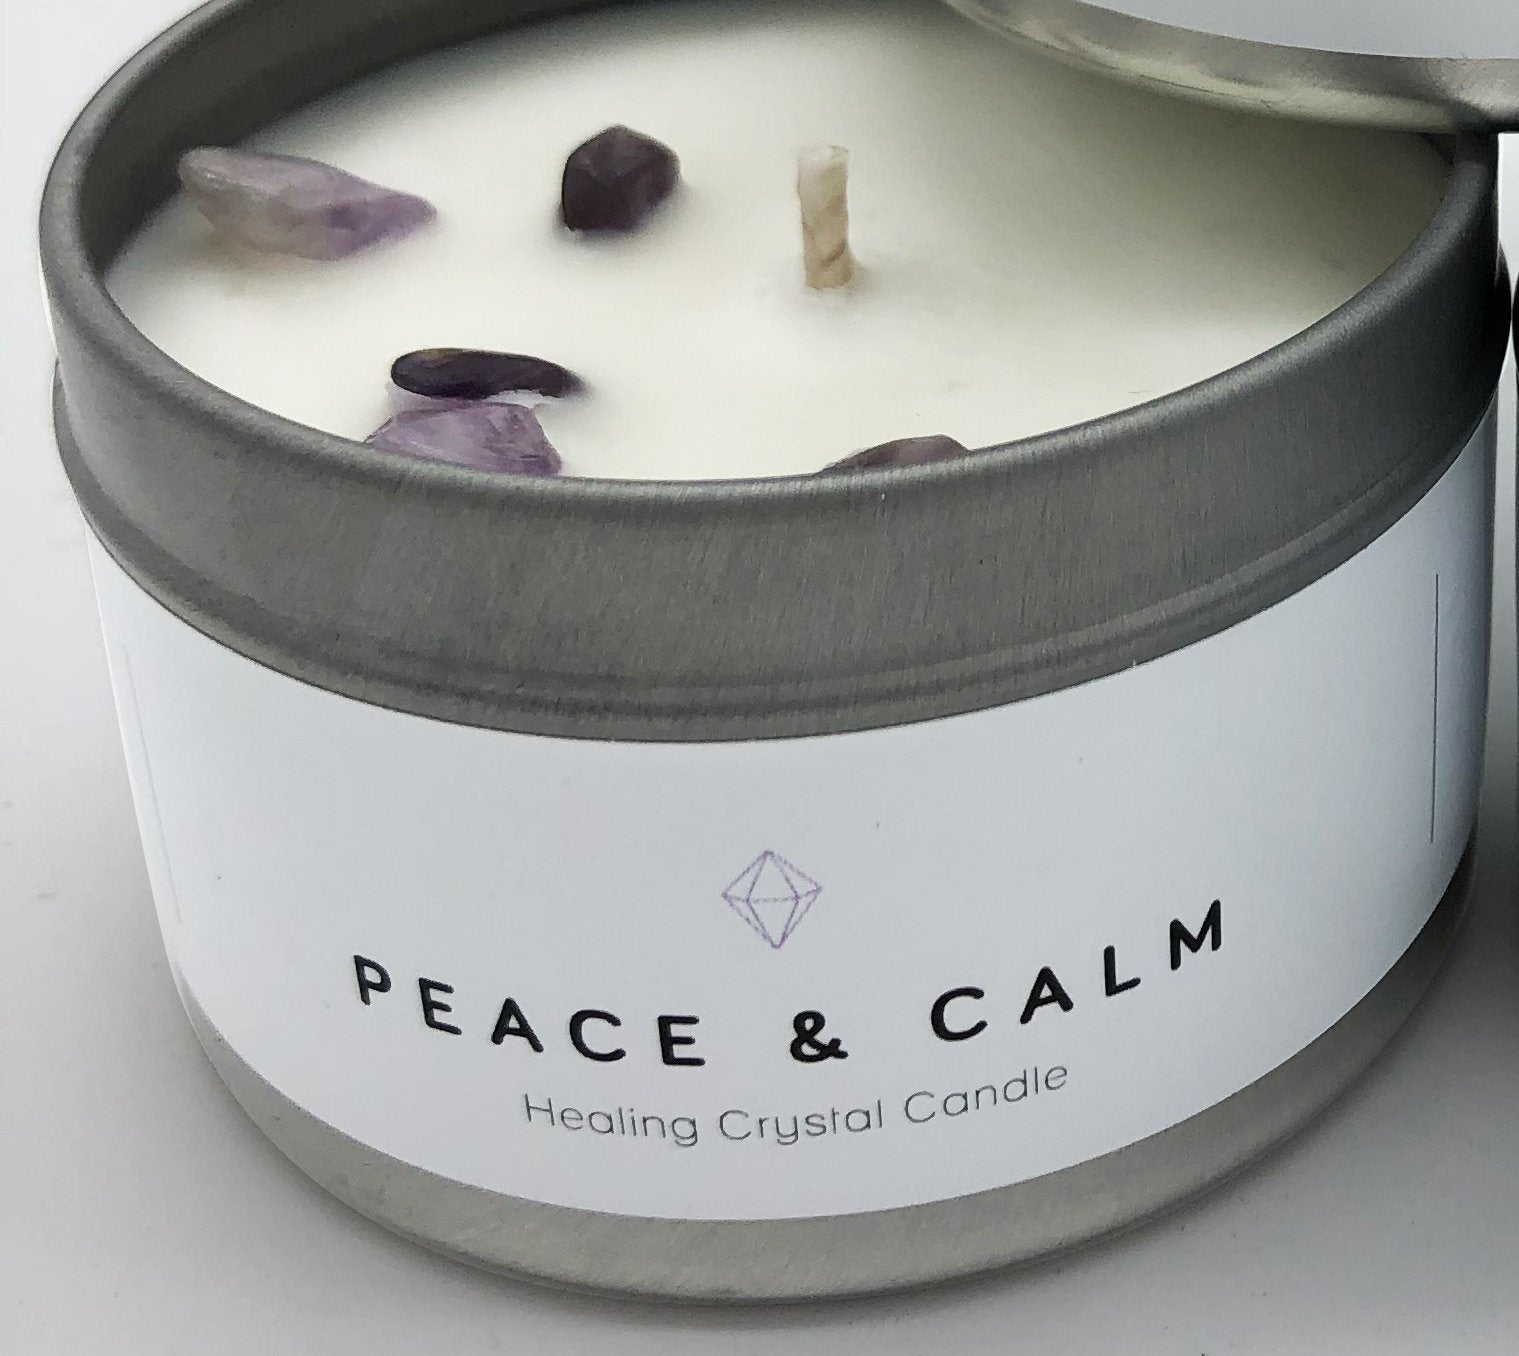 Healthy Lifestyles - Wax + Fire - Healing Crystal Candle - Peace & Calm, 4oz